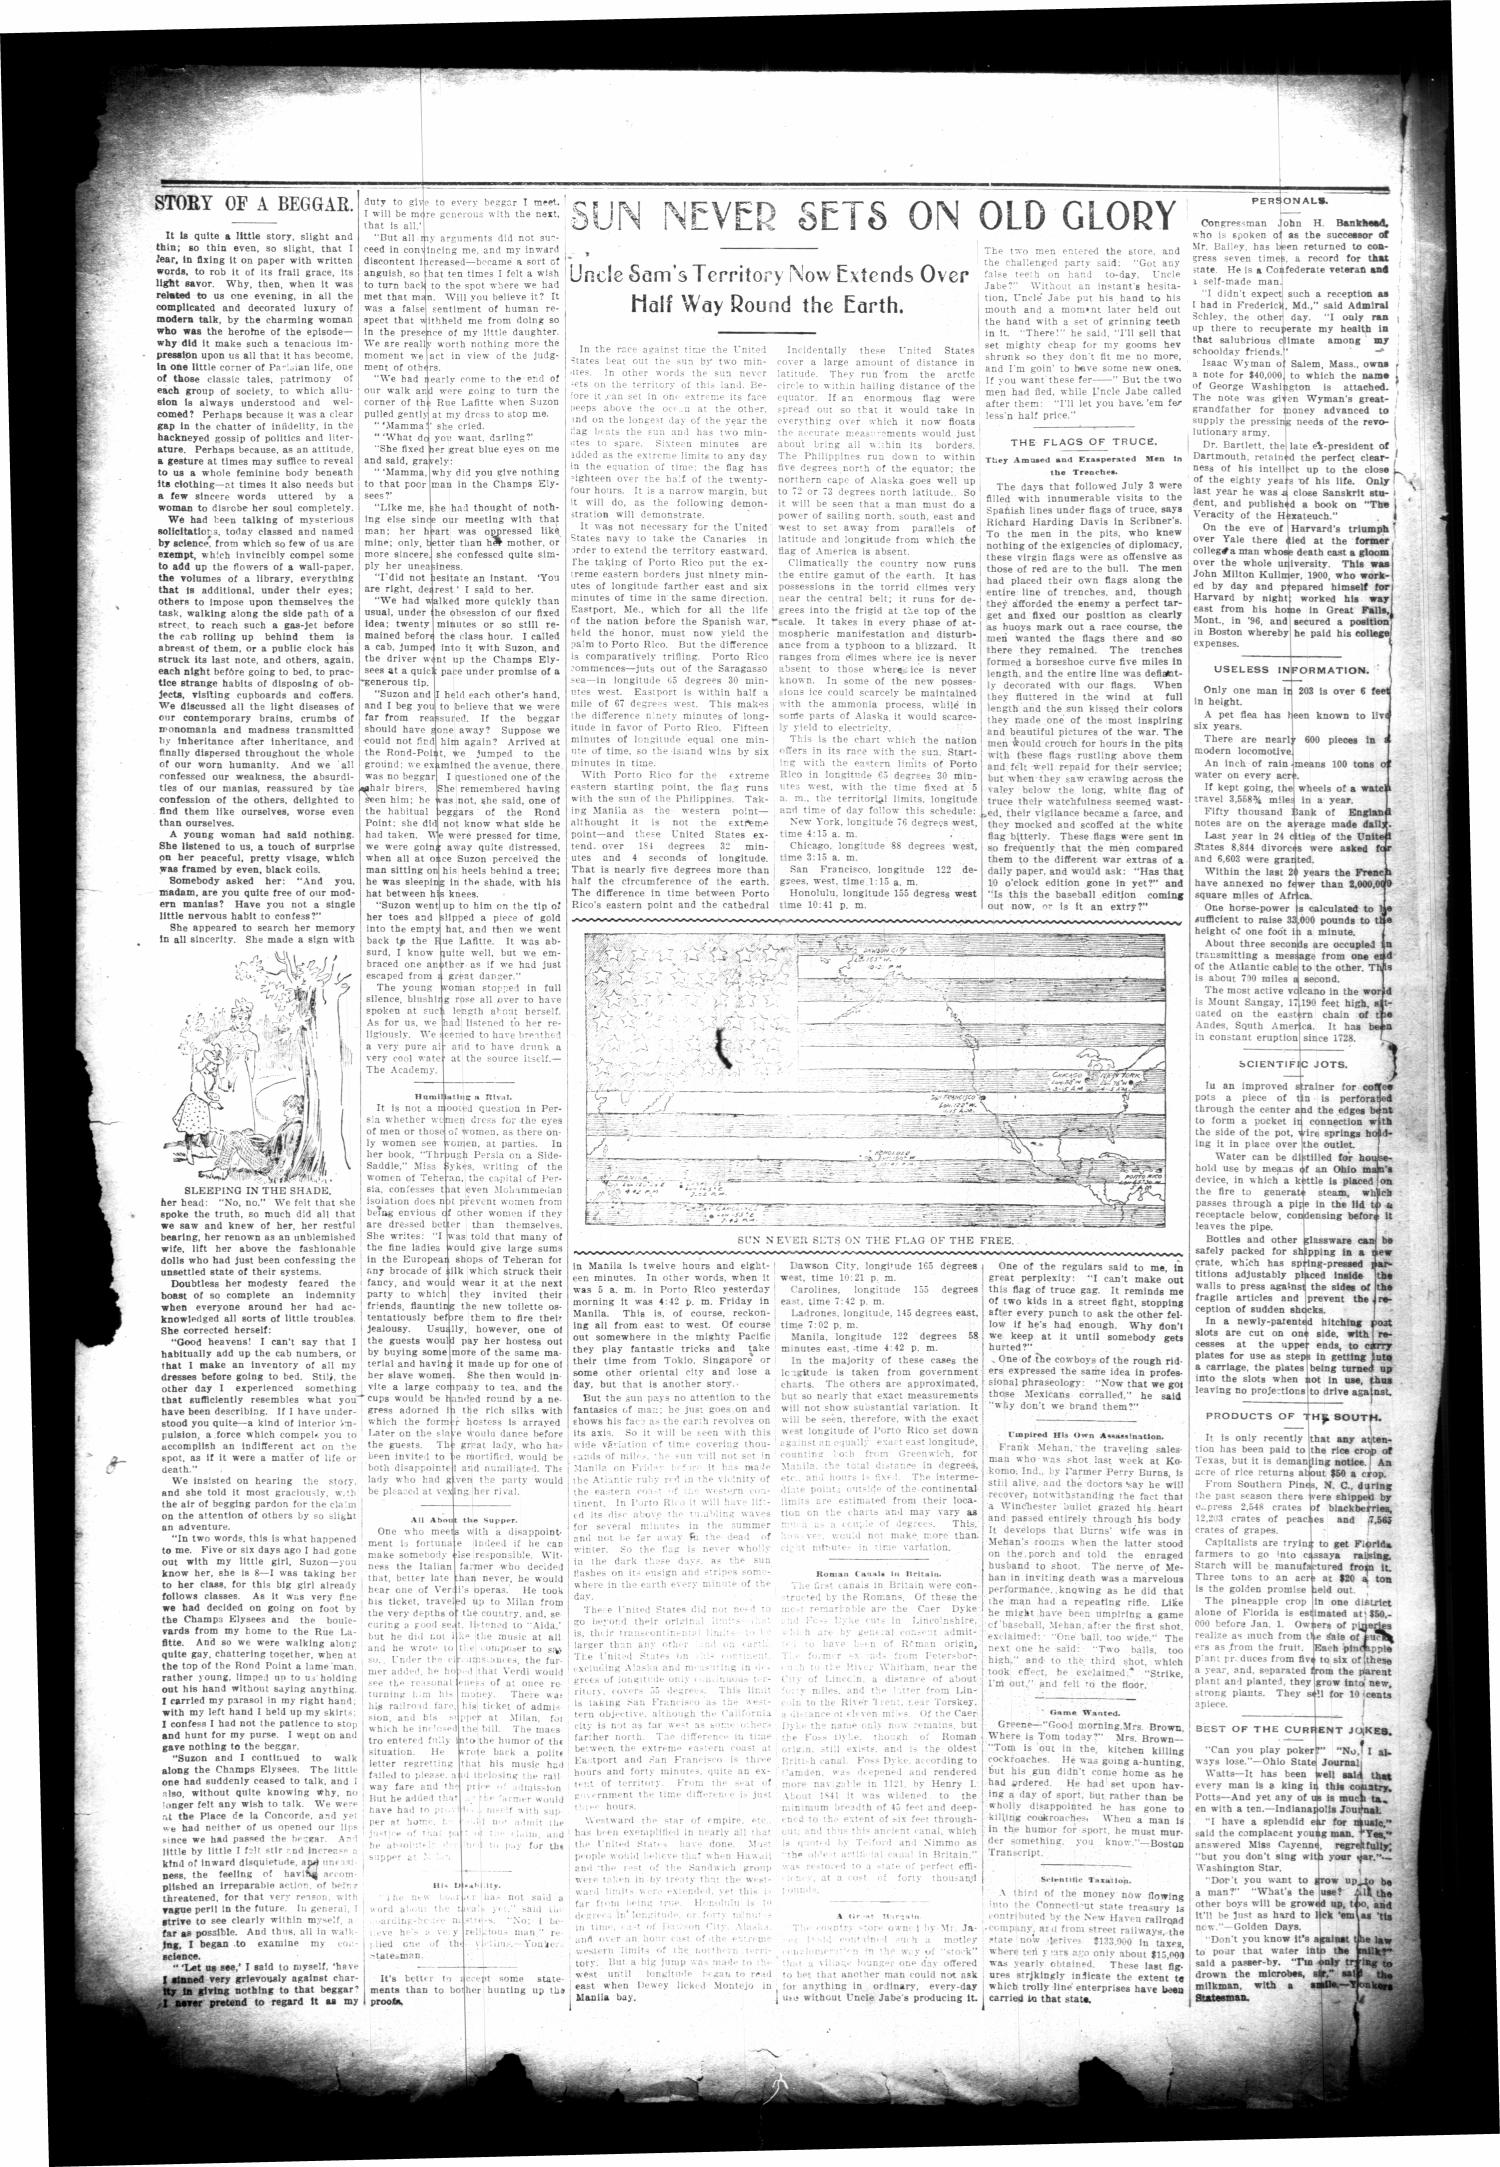 The Cuero Daily Record. (Cuero, Tex.), Vol. 10, No. 29, Ed. 1 Wednesday, February 1, 1899                                                                                                      [Sequence #]: 2 of 8